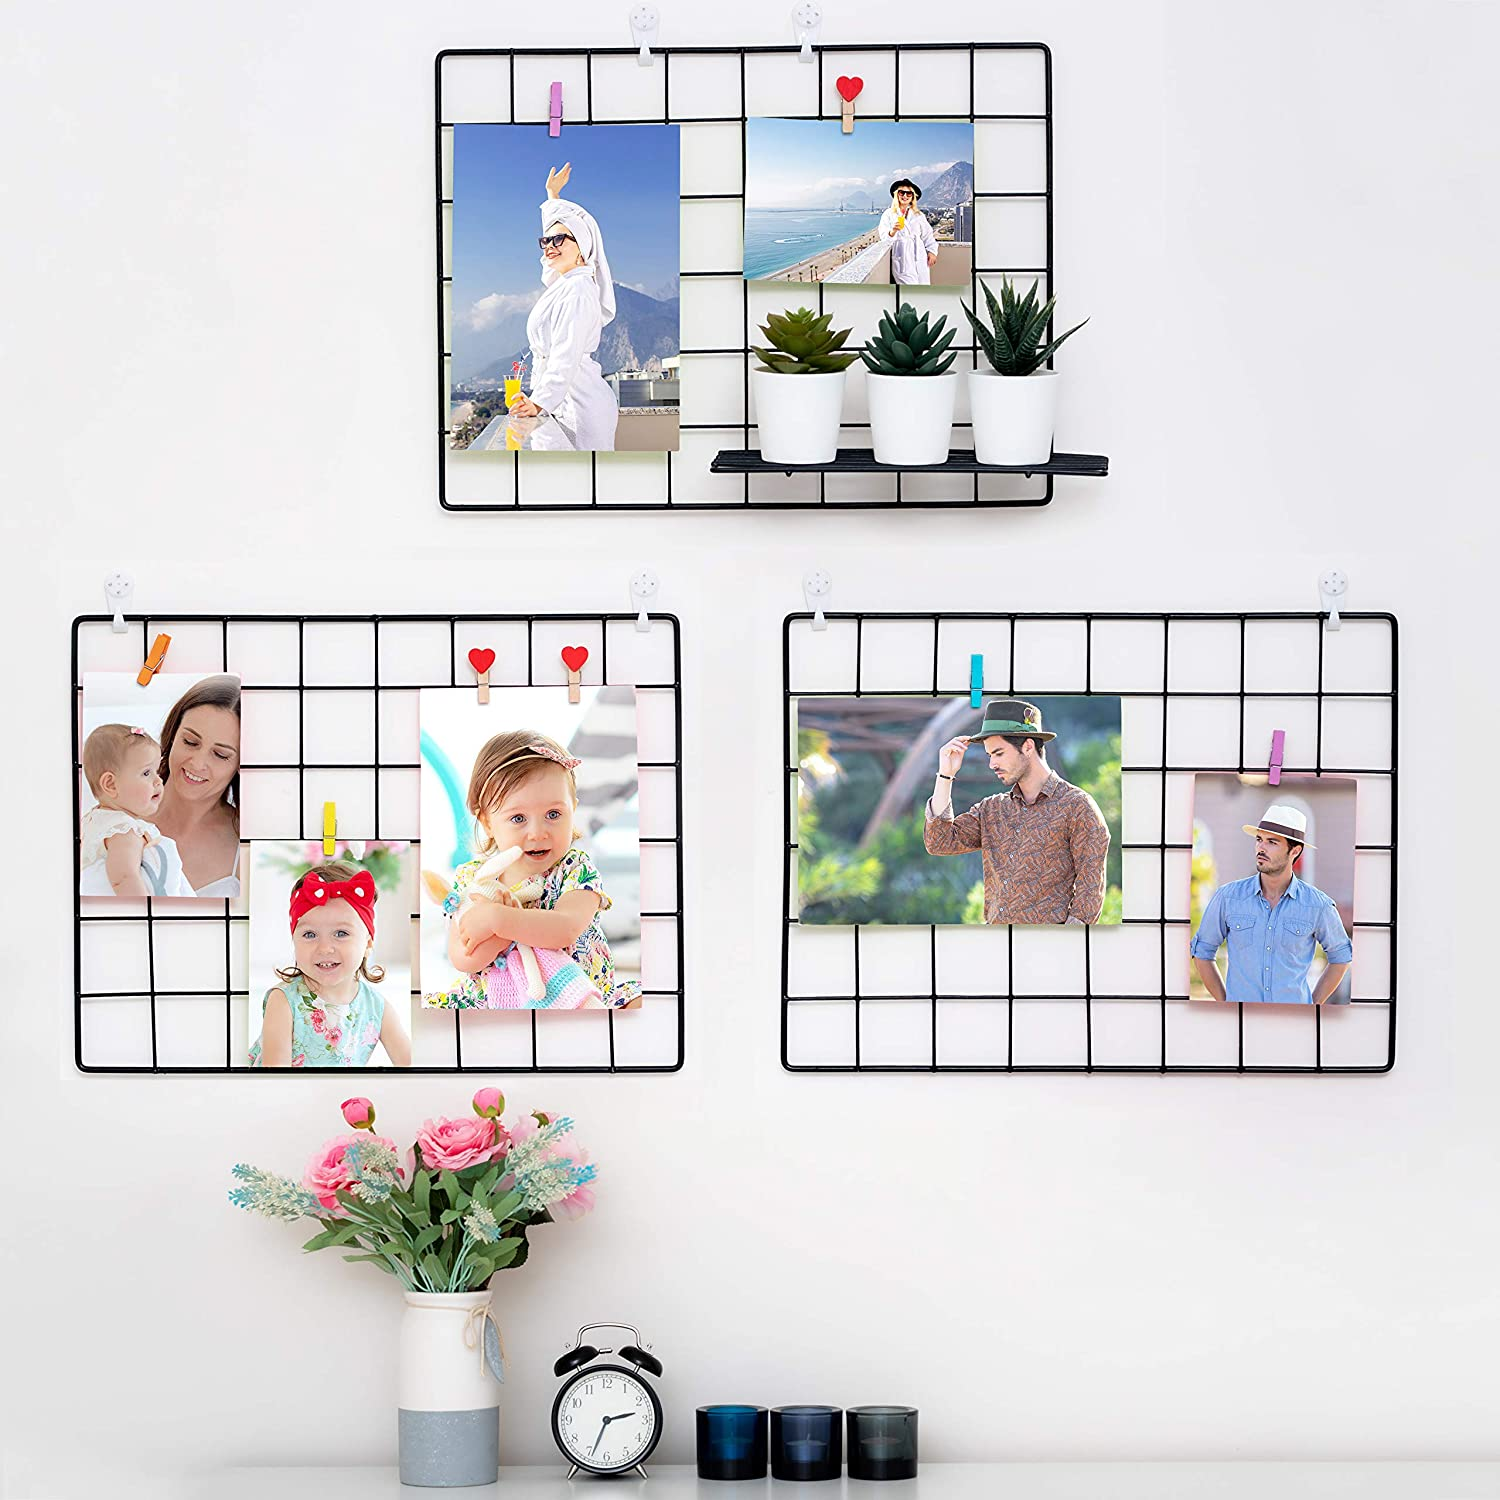 3 Pack Wall Grid Wire Panel   Photo Display Gridwall   Metal, Black & Magnetic Panels   Mesh Storage Organizer & Picture Frame   Hanging Home, Office & Kitchen Decor